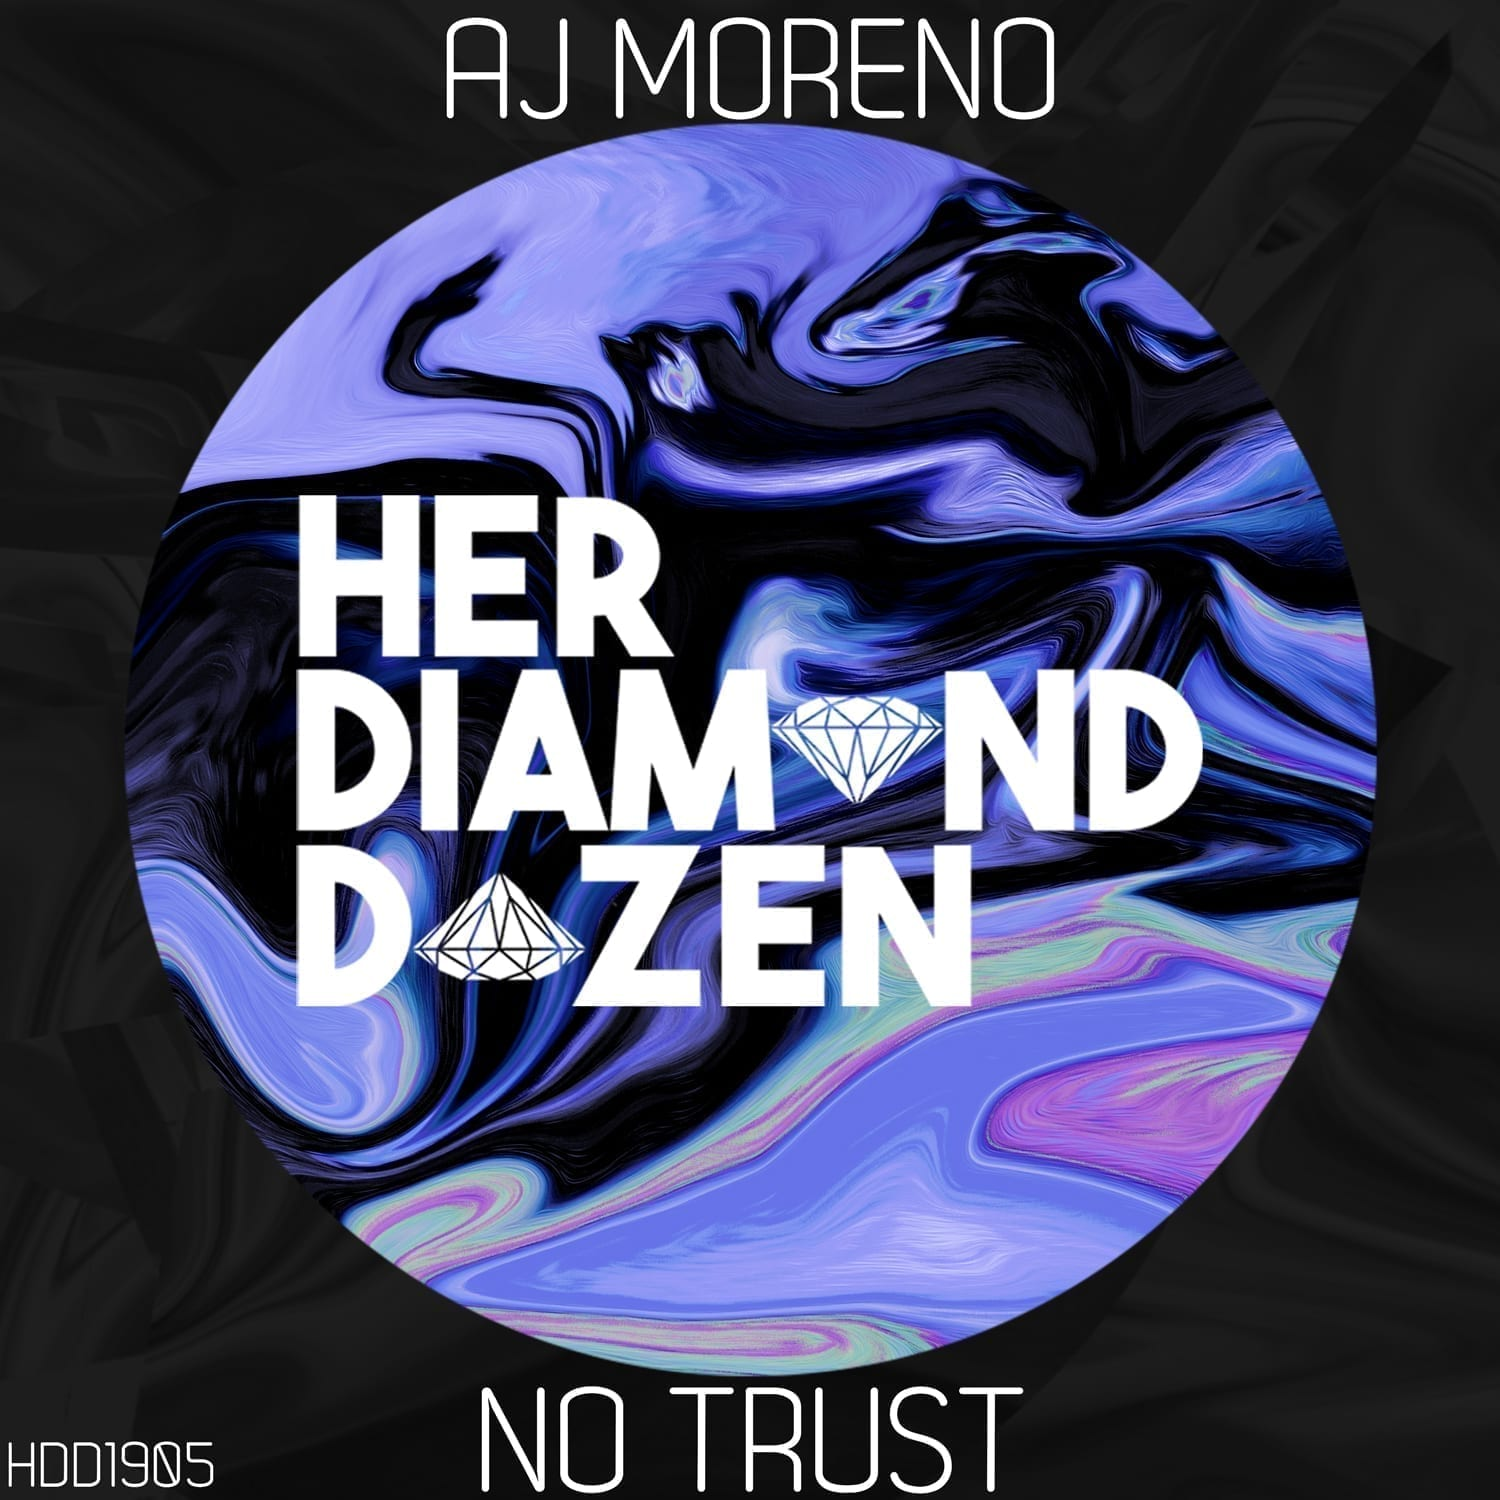 "Her Diamond Dozen rocking the charts with ""NoTrust"" by AJ Moreno"